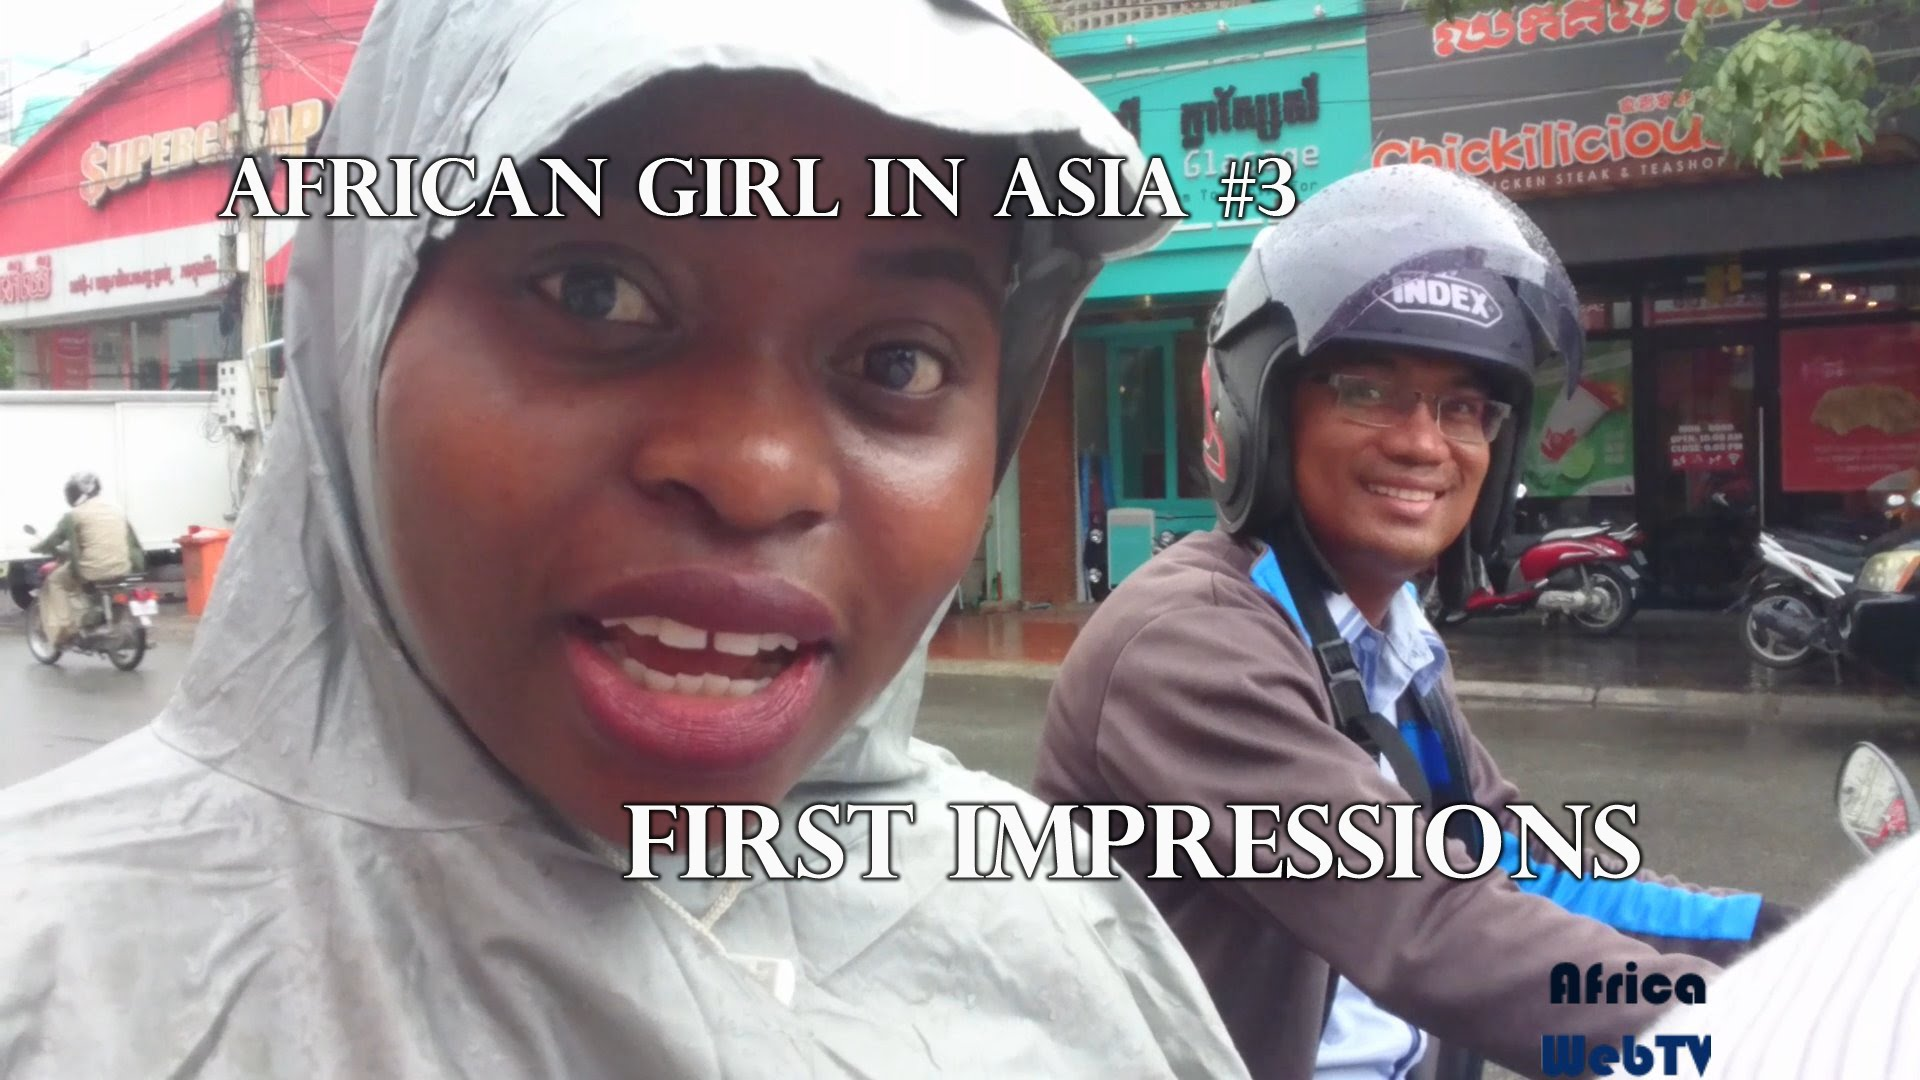 An African girl in Asia – First Impressions #3